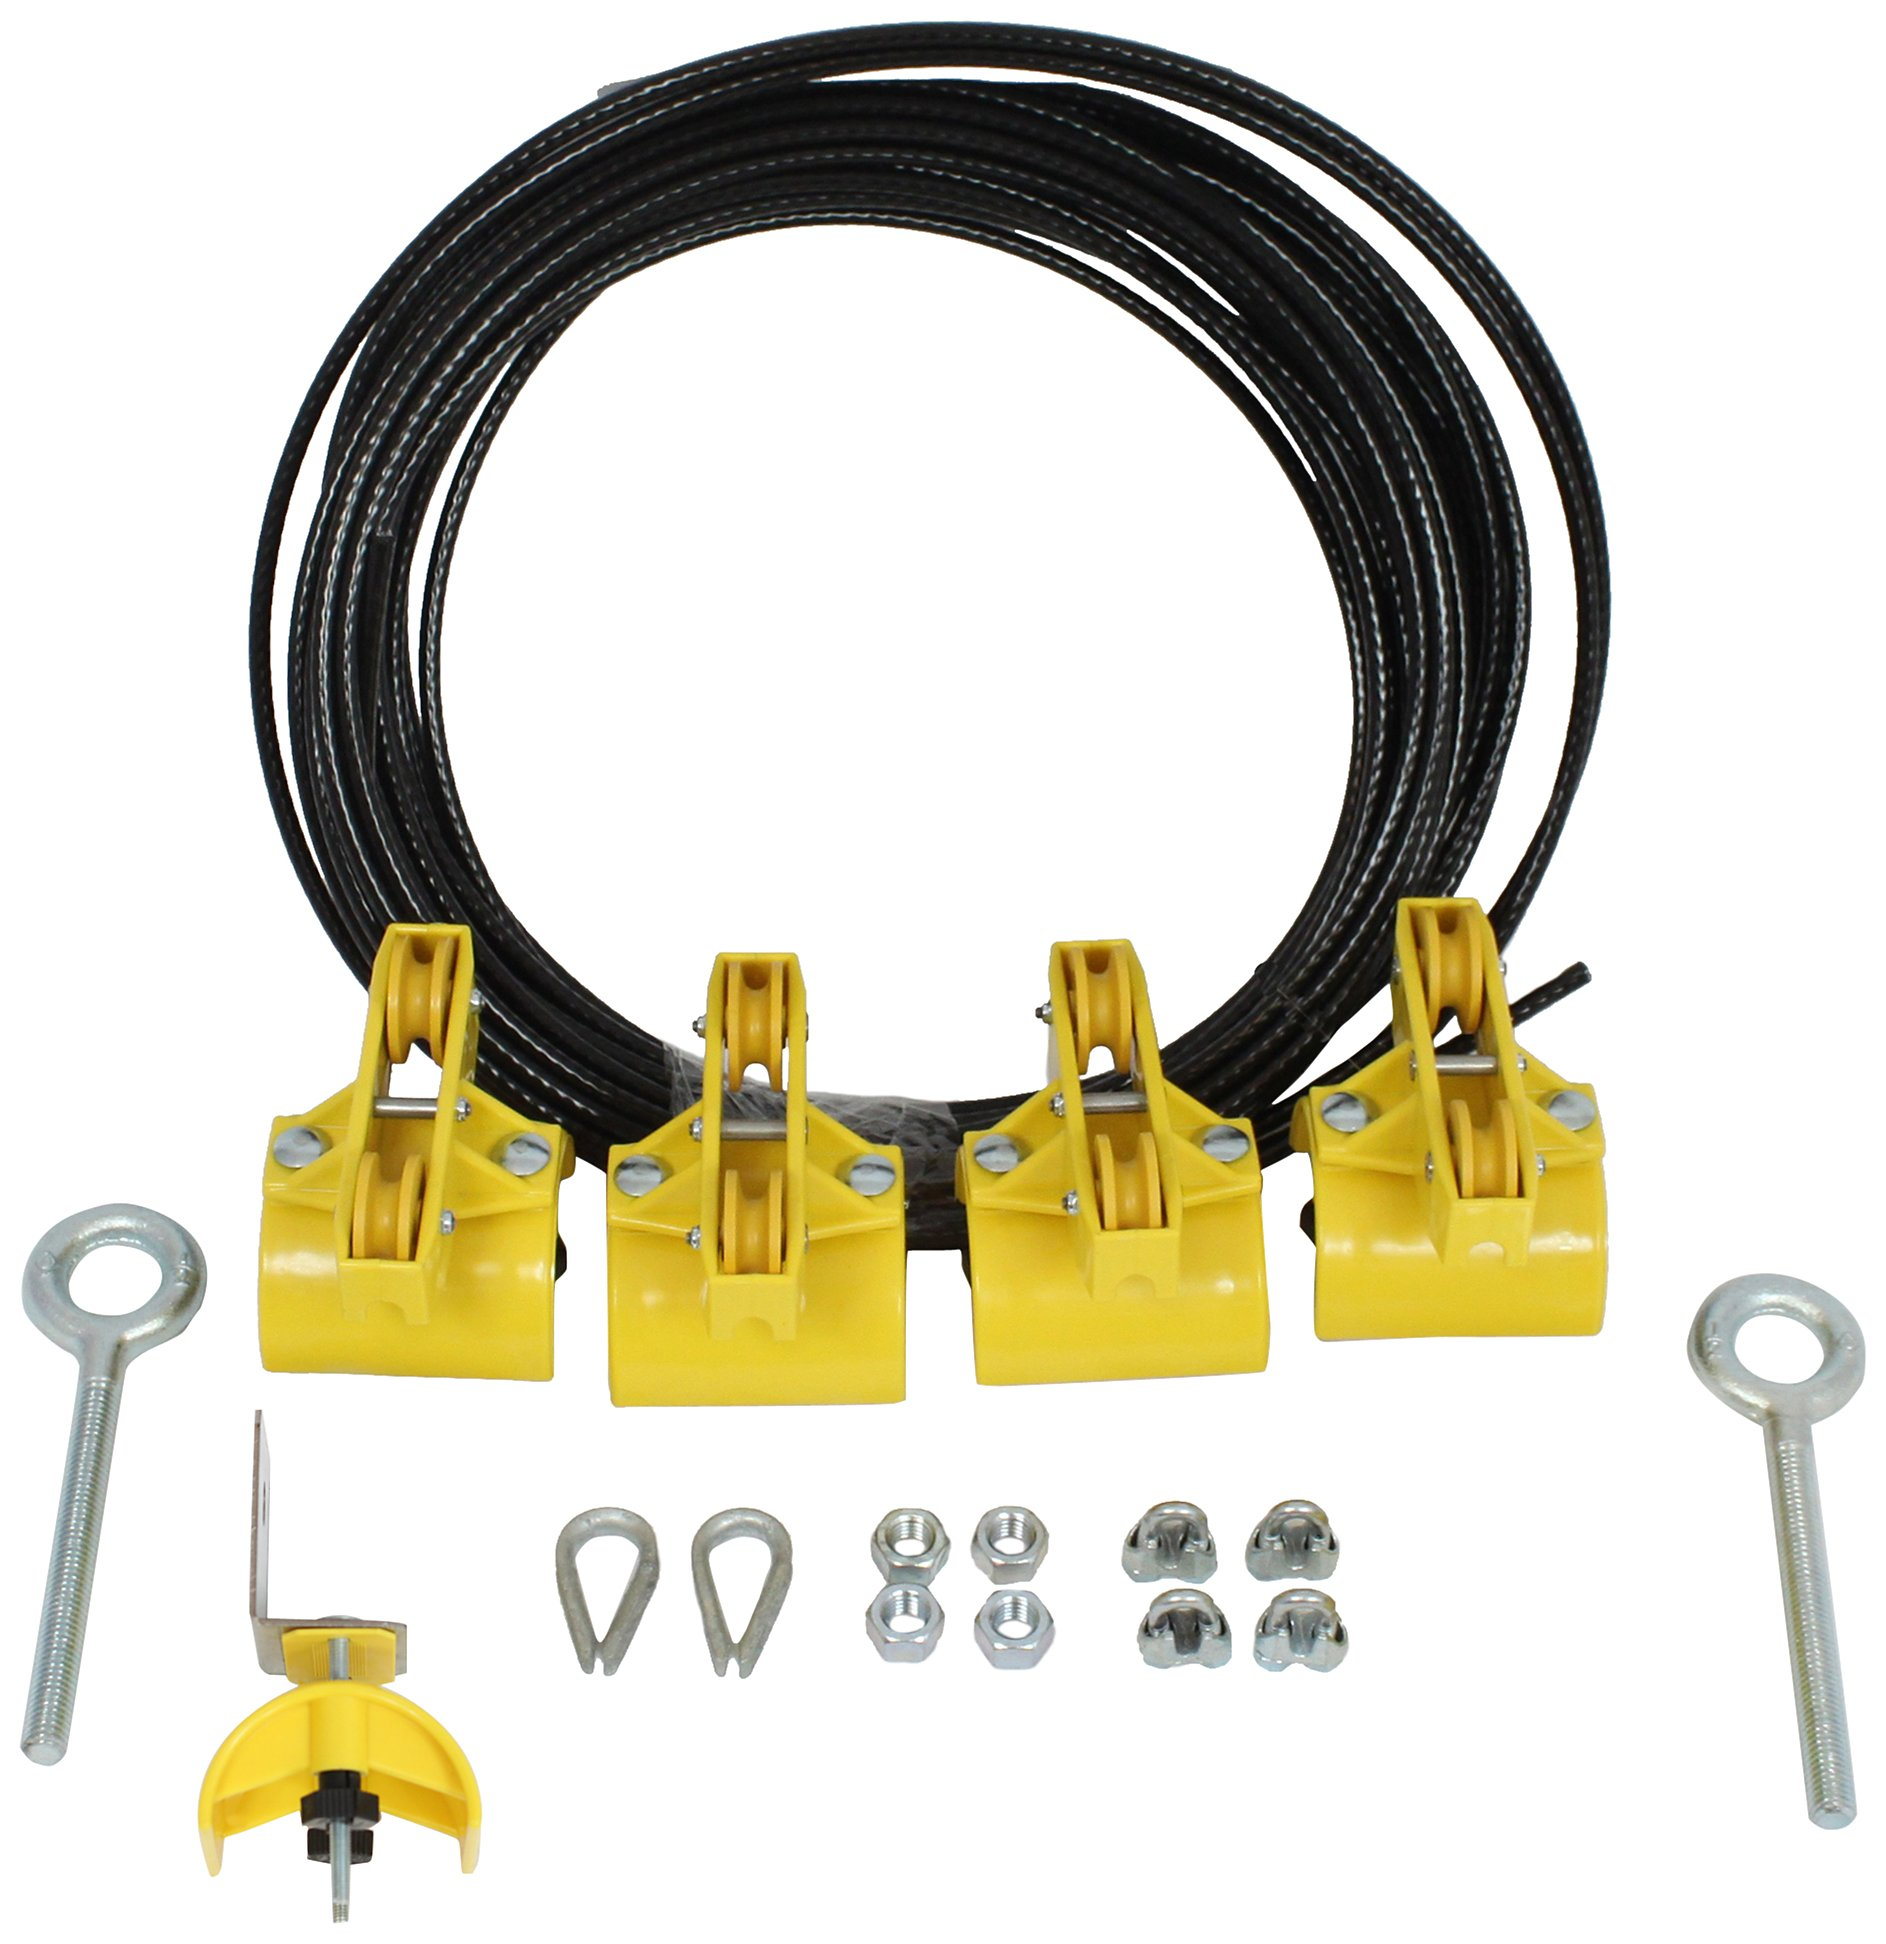 KH Industries FTSW-FL-KIT40 Festoon Stretch Wire Kit with 40' Length for Flat Cable System